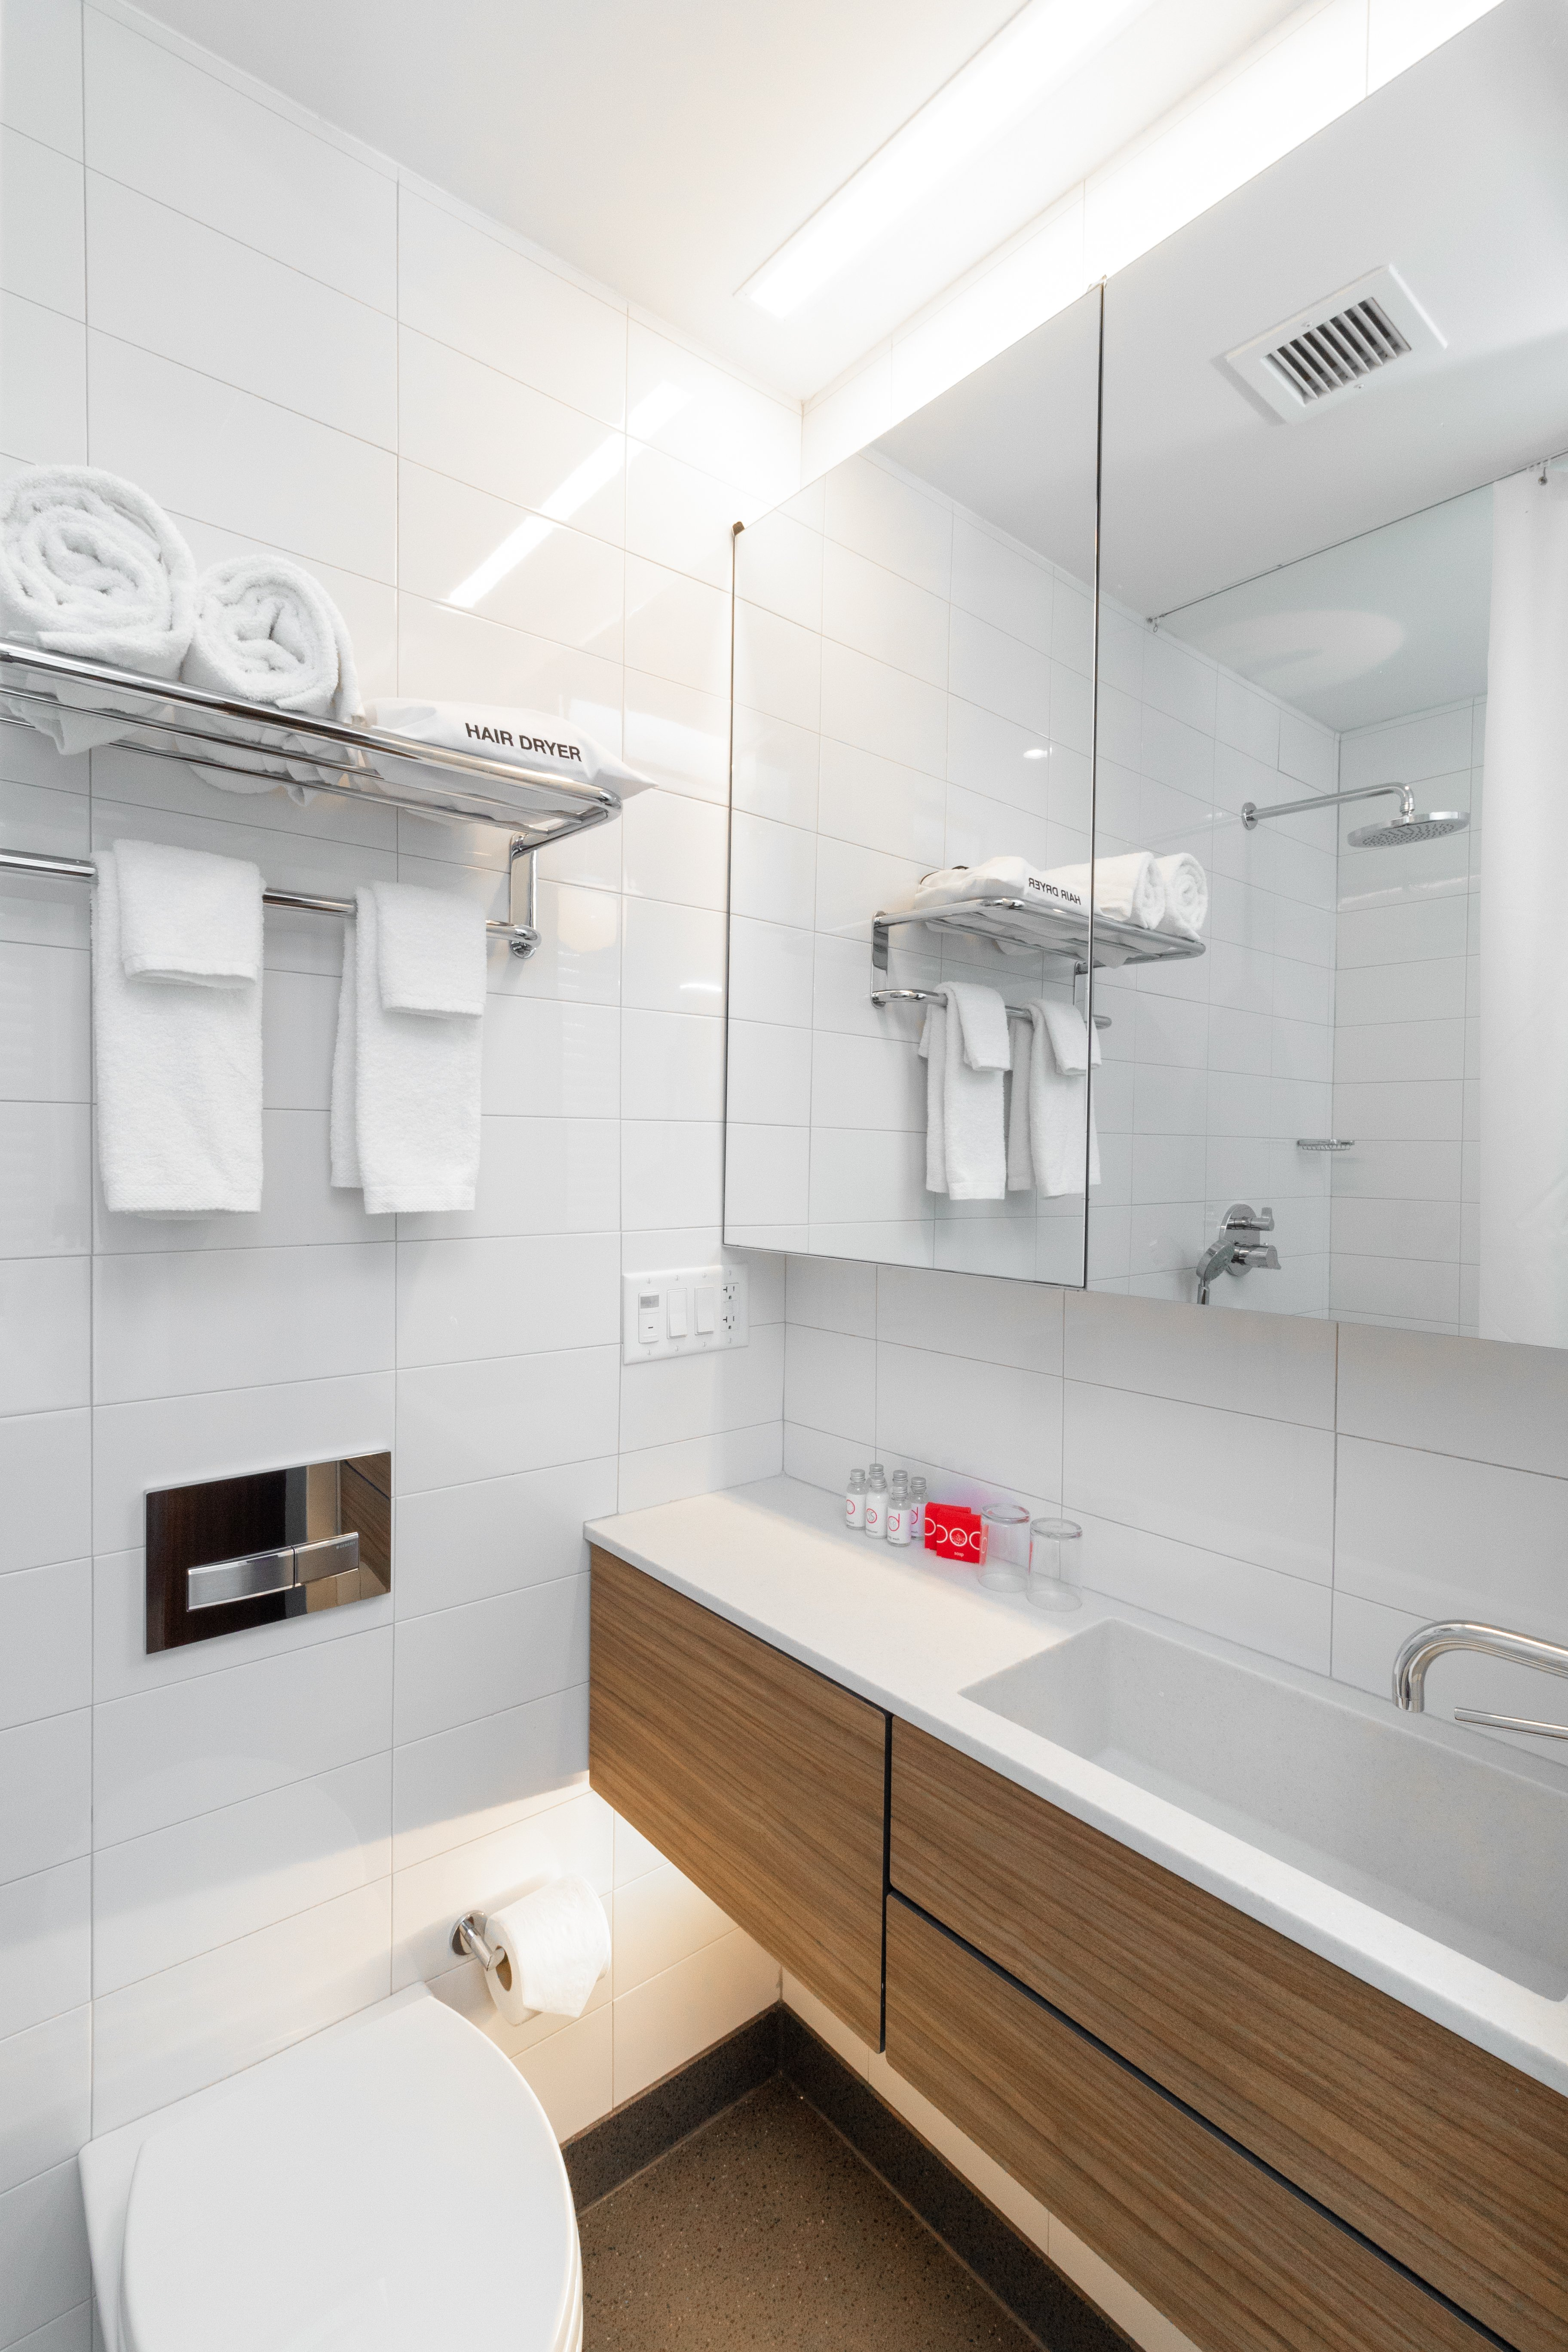 The bathrooms are made of stone, Corian, chrome and sliding glass doors.